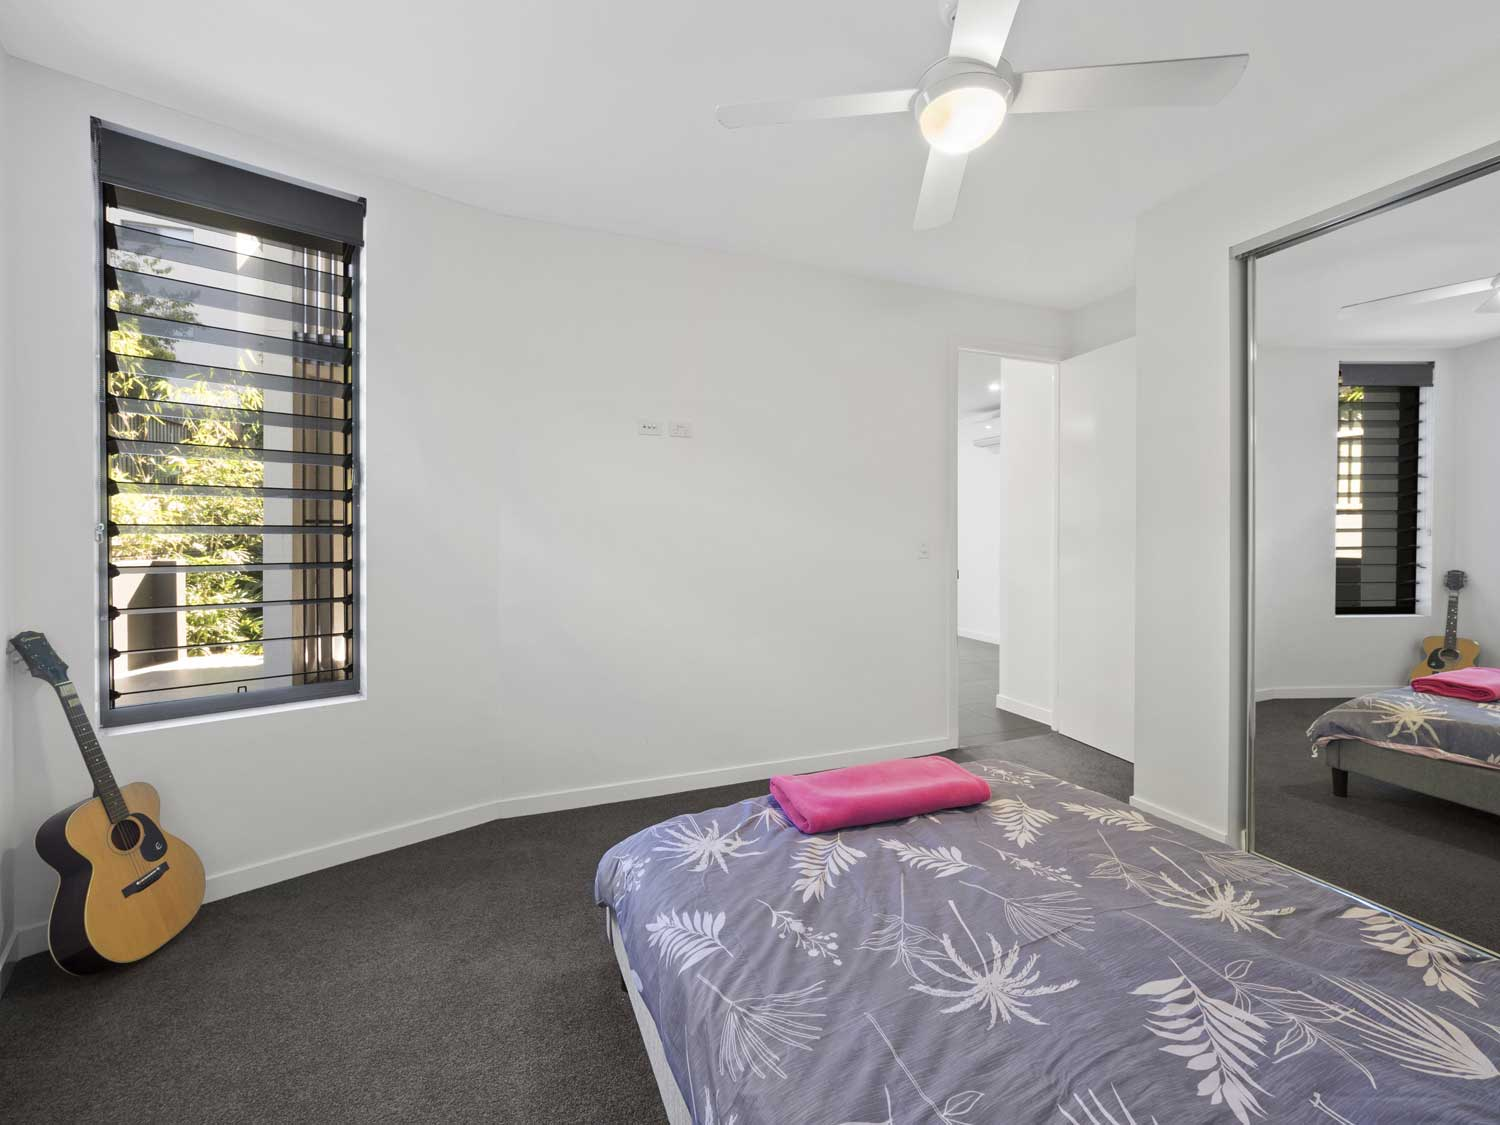 One of the bedrooms - Apartment photography at Upper Mt Gravatt